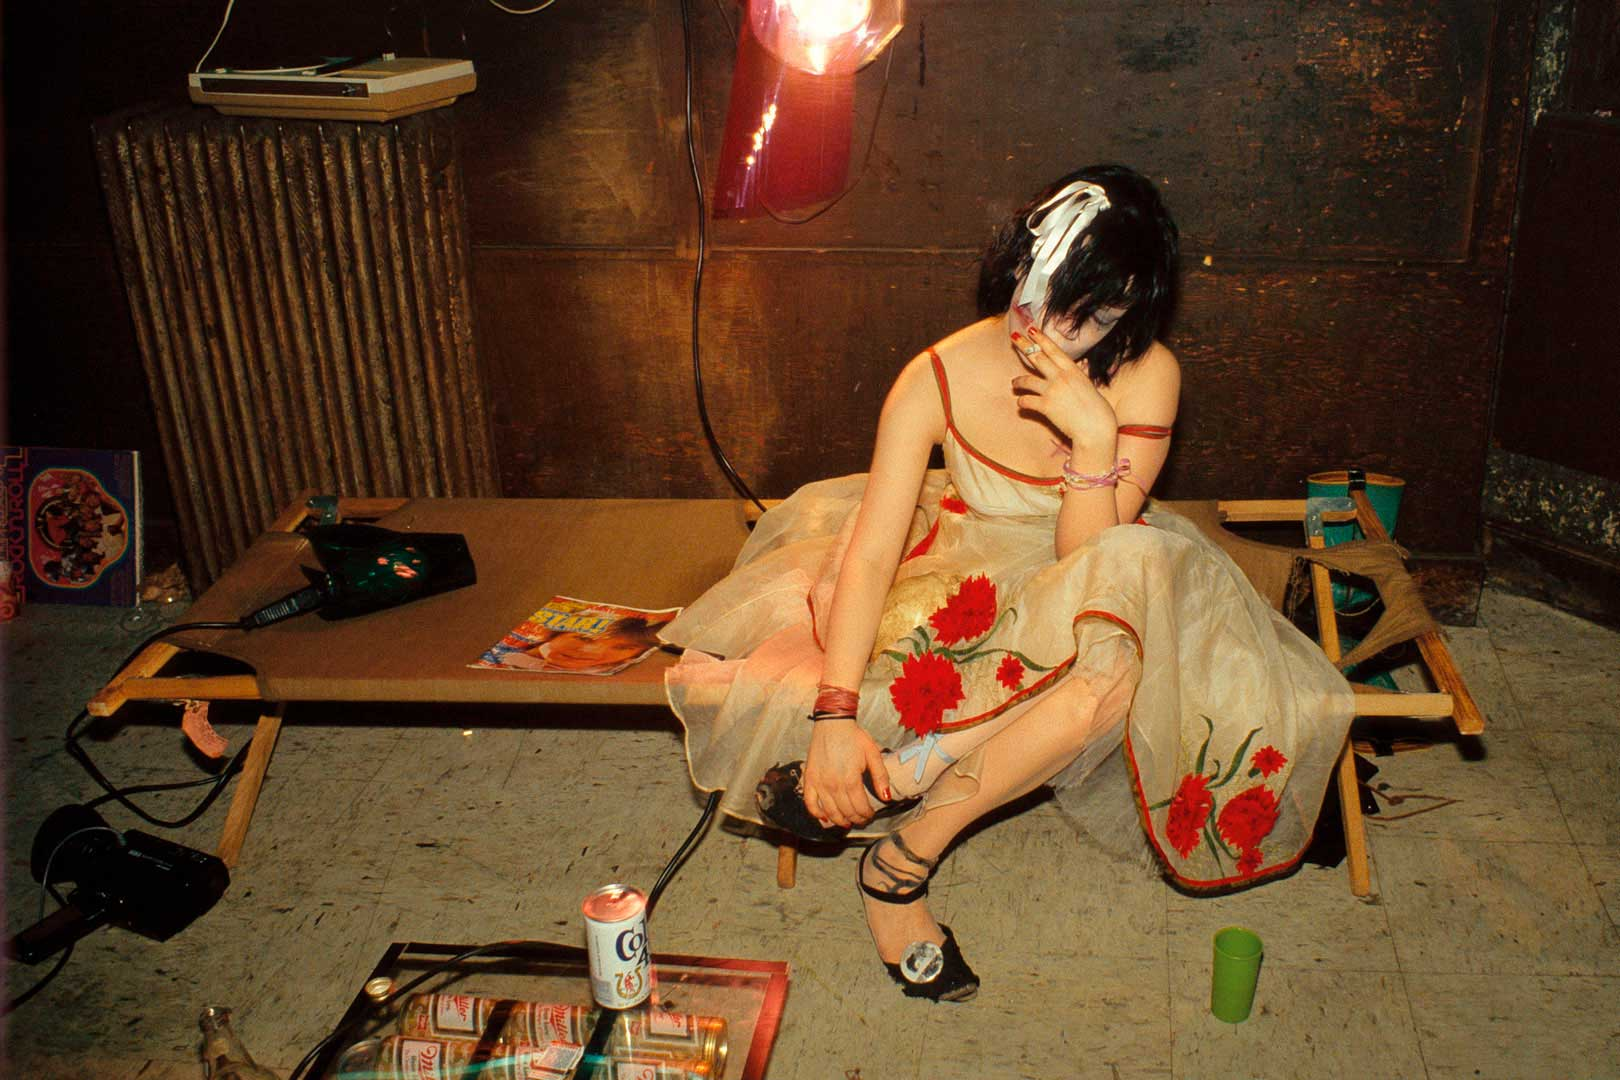 nan-goldin-the-ballad-of-sexual-dependency-cover